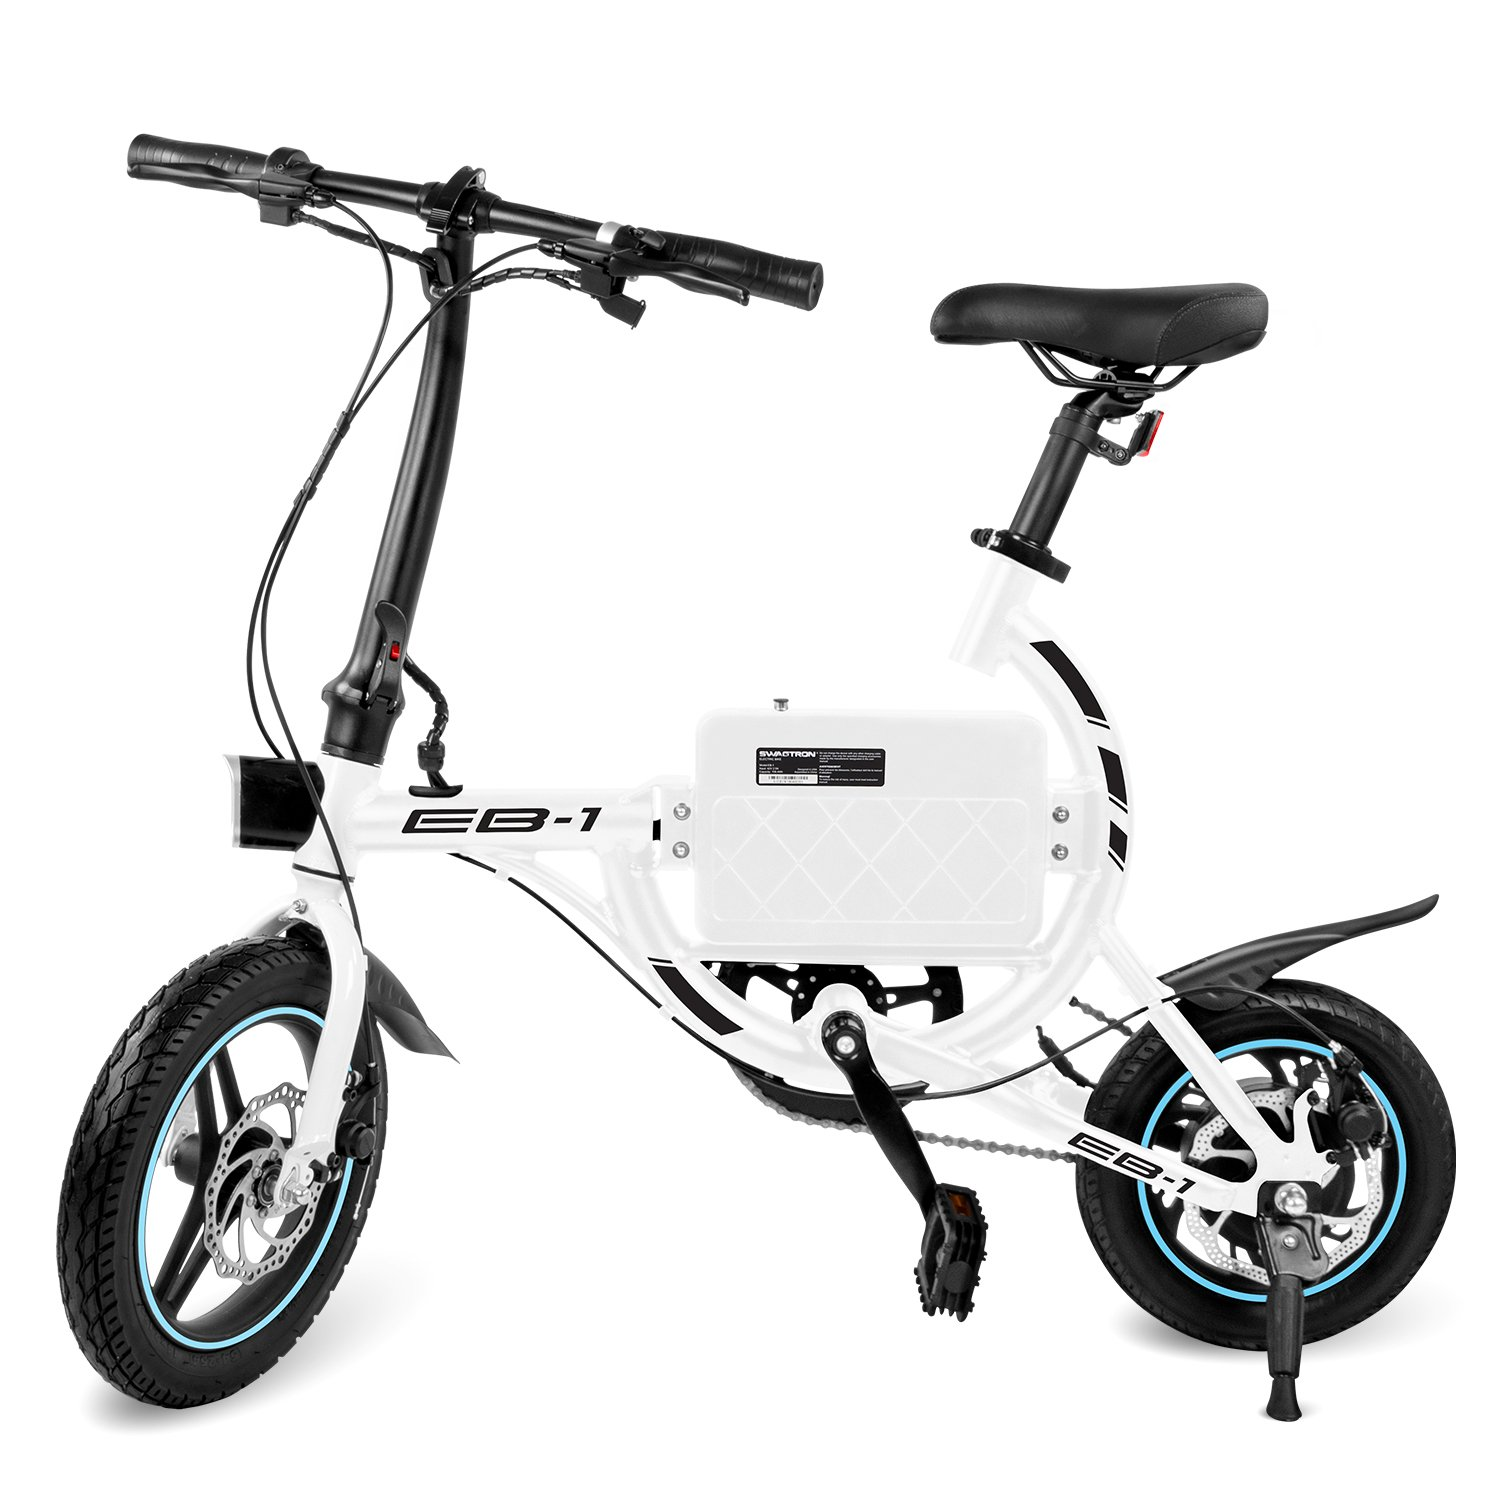 SwagCycle EB-1 Lightweight Aluminum Folding eBike with High-Torque 250W Motor and Dual Disc Brakes; Electric Bike with Pedal-Assist and Swappable Bike Seats (White) by Swagtron